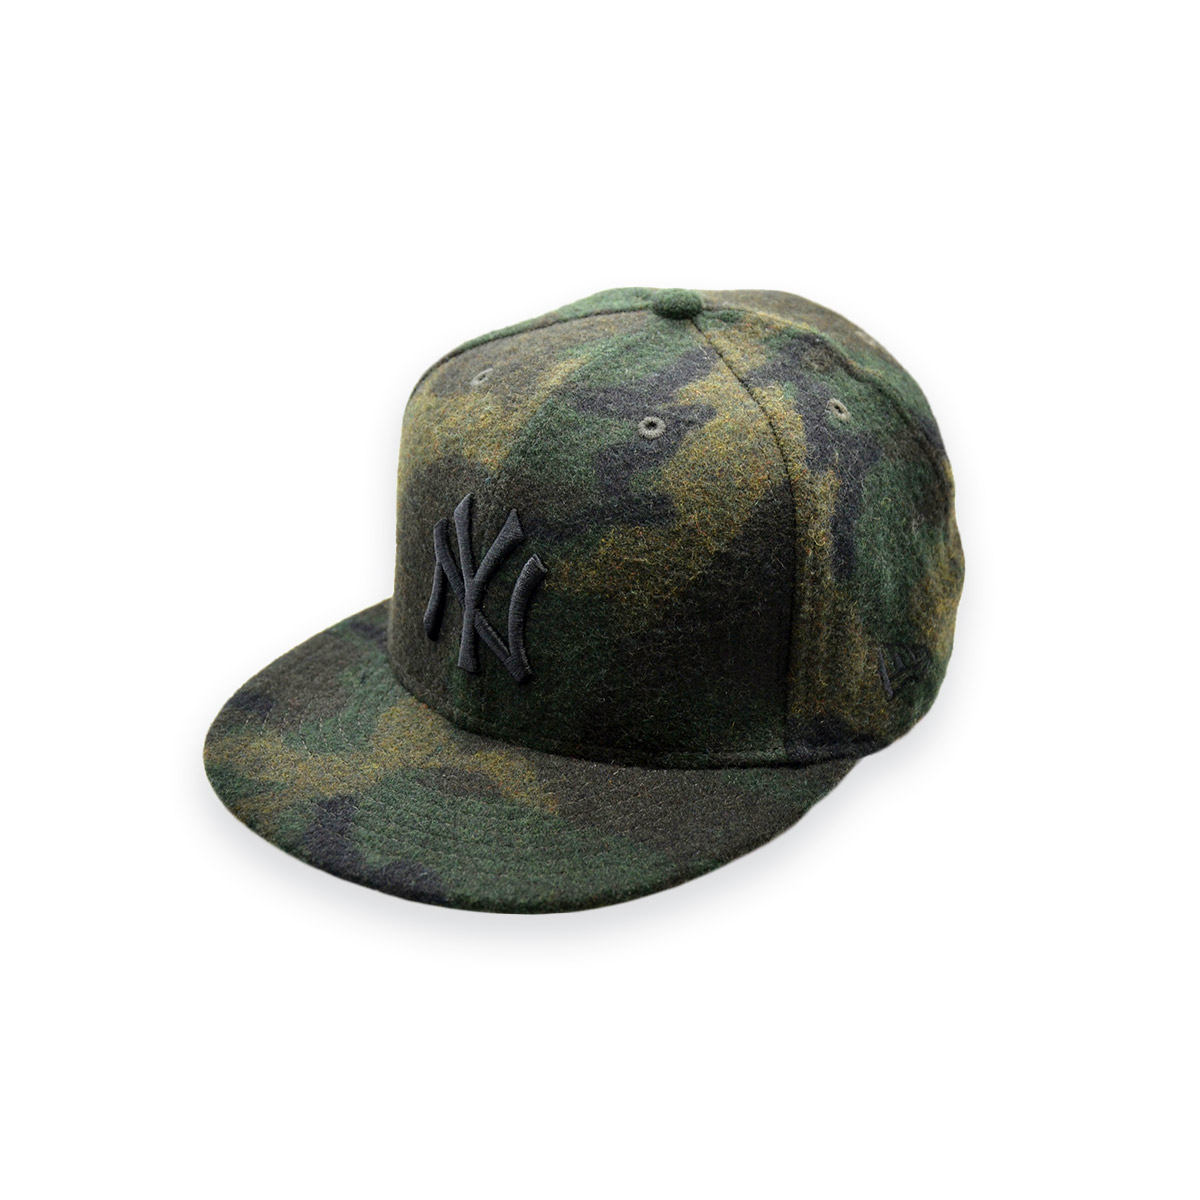 6f1647295f2 NEW ERA JAPAN NEW YORK YANKEES CAMO FITTED 59FIFTY CAP 7-1 2 59.6cm ...